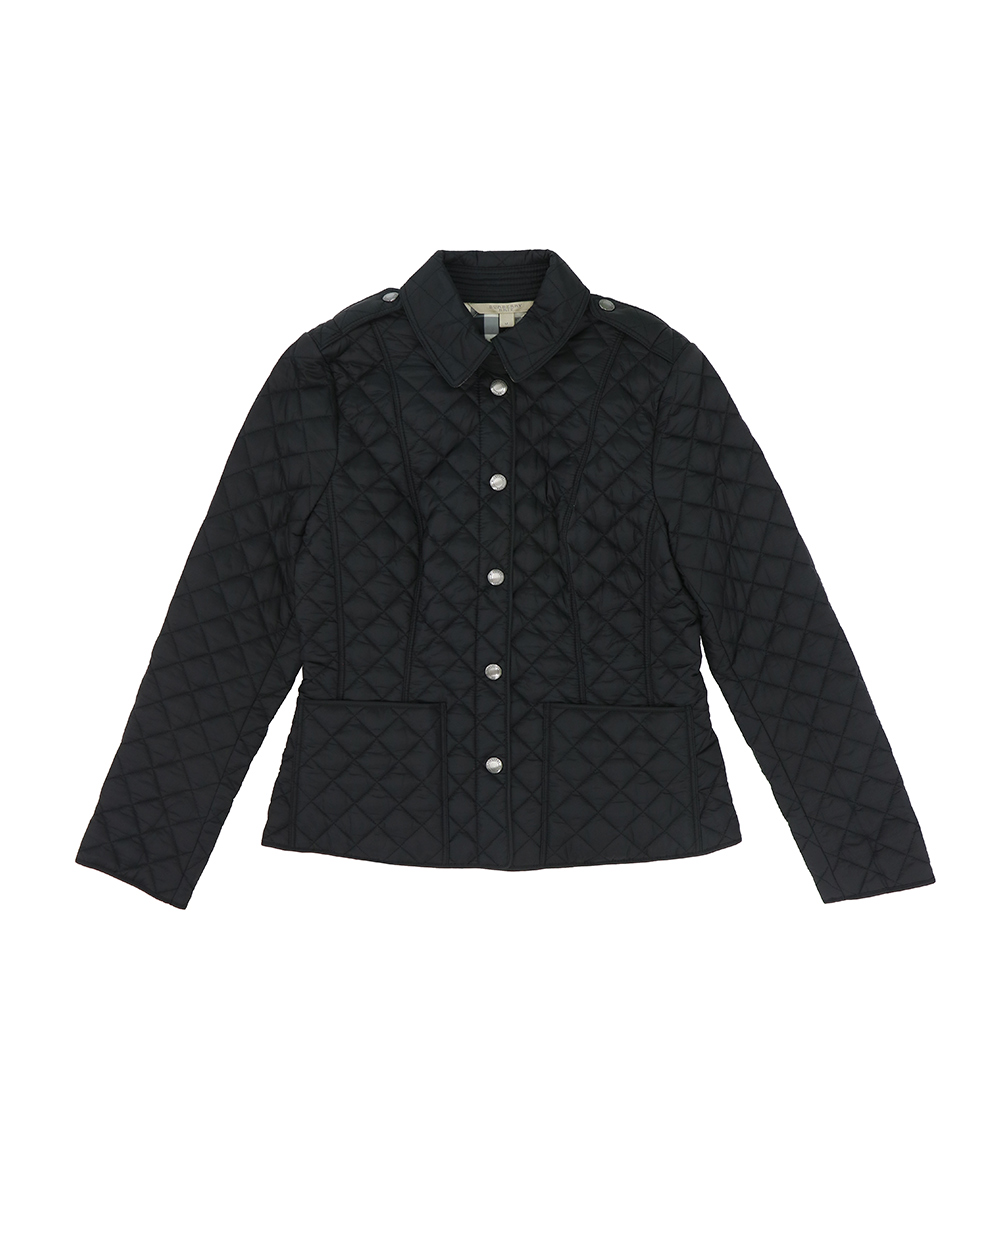 GIUBBINO Quilted Jacket